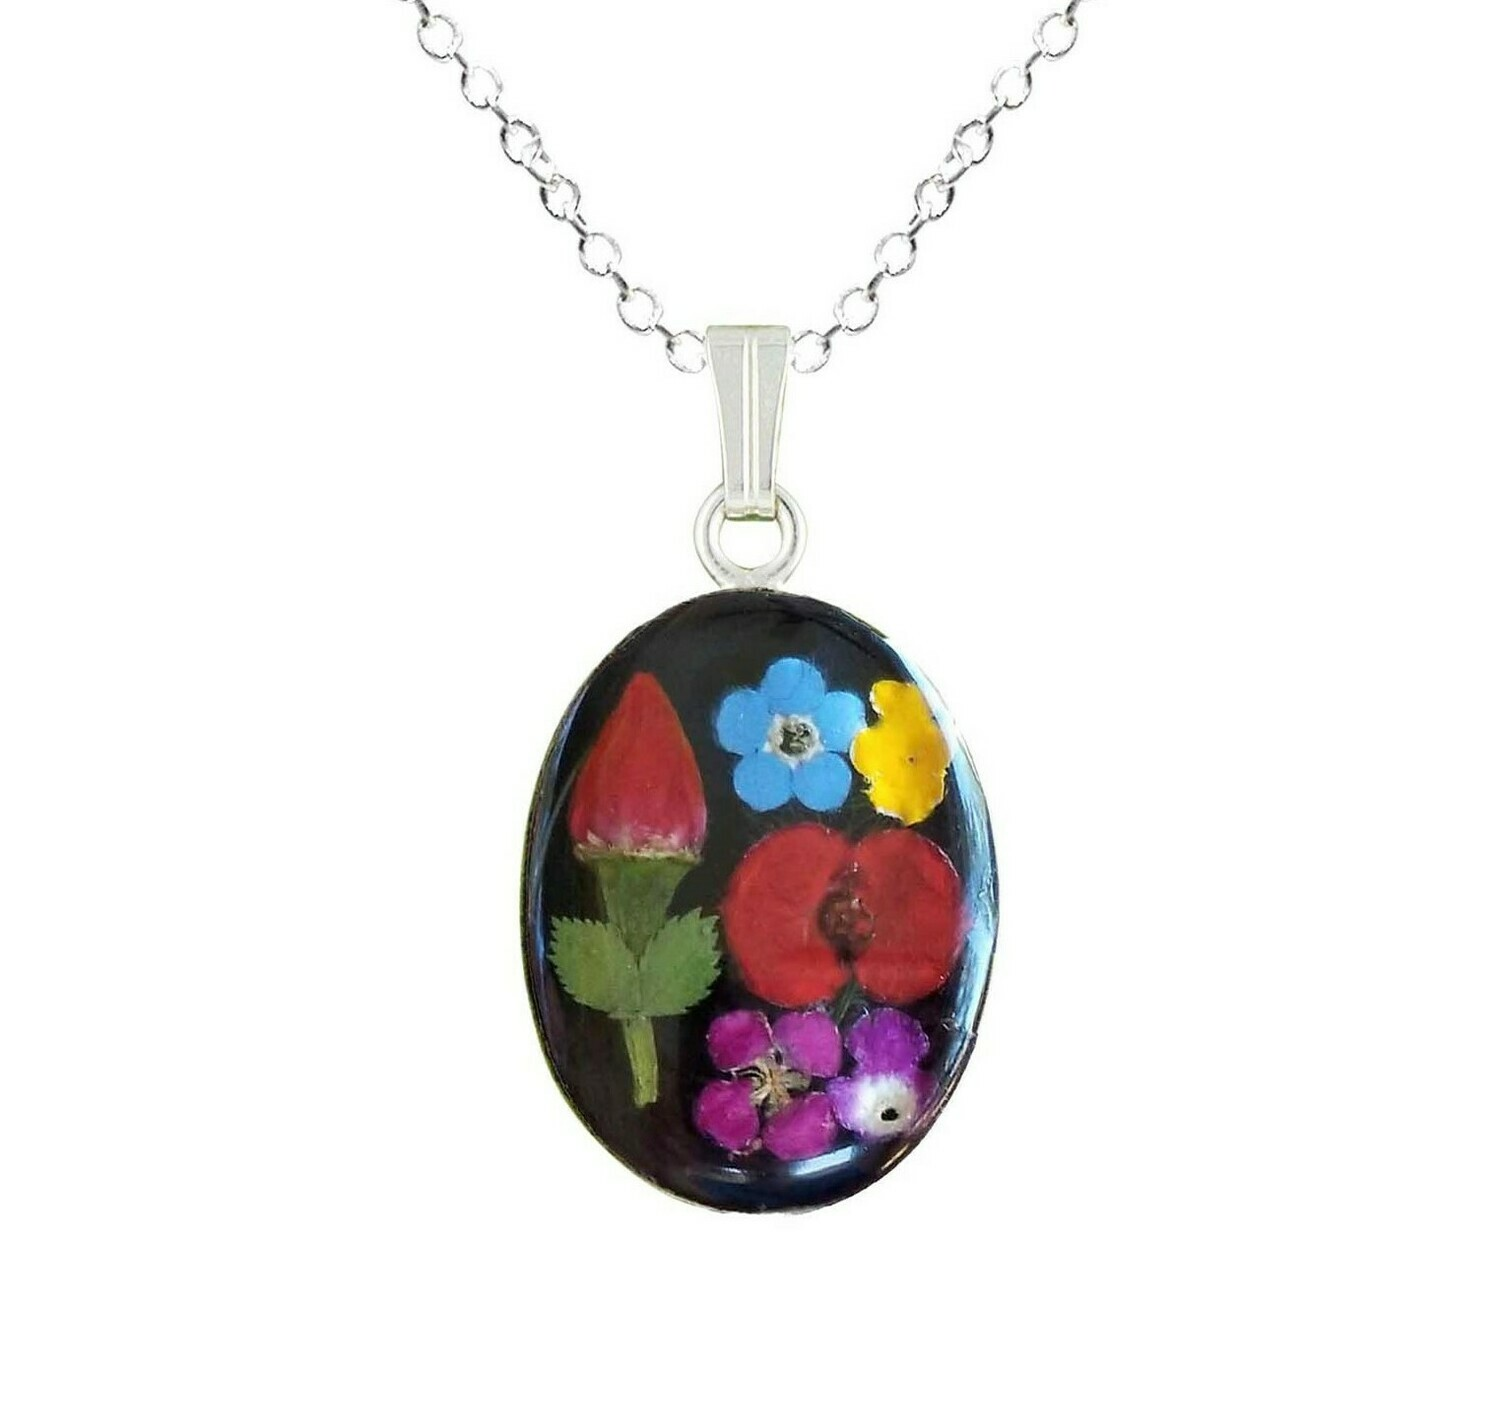 Rose & Mix Flower Necklace, Medium Oval, Black Background